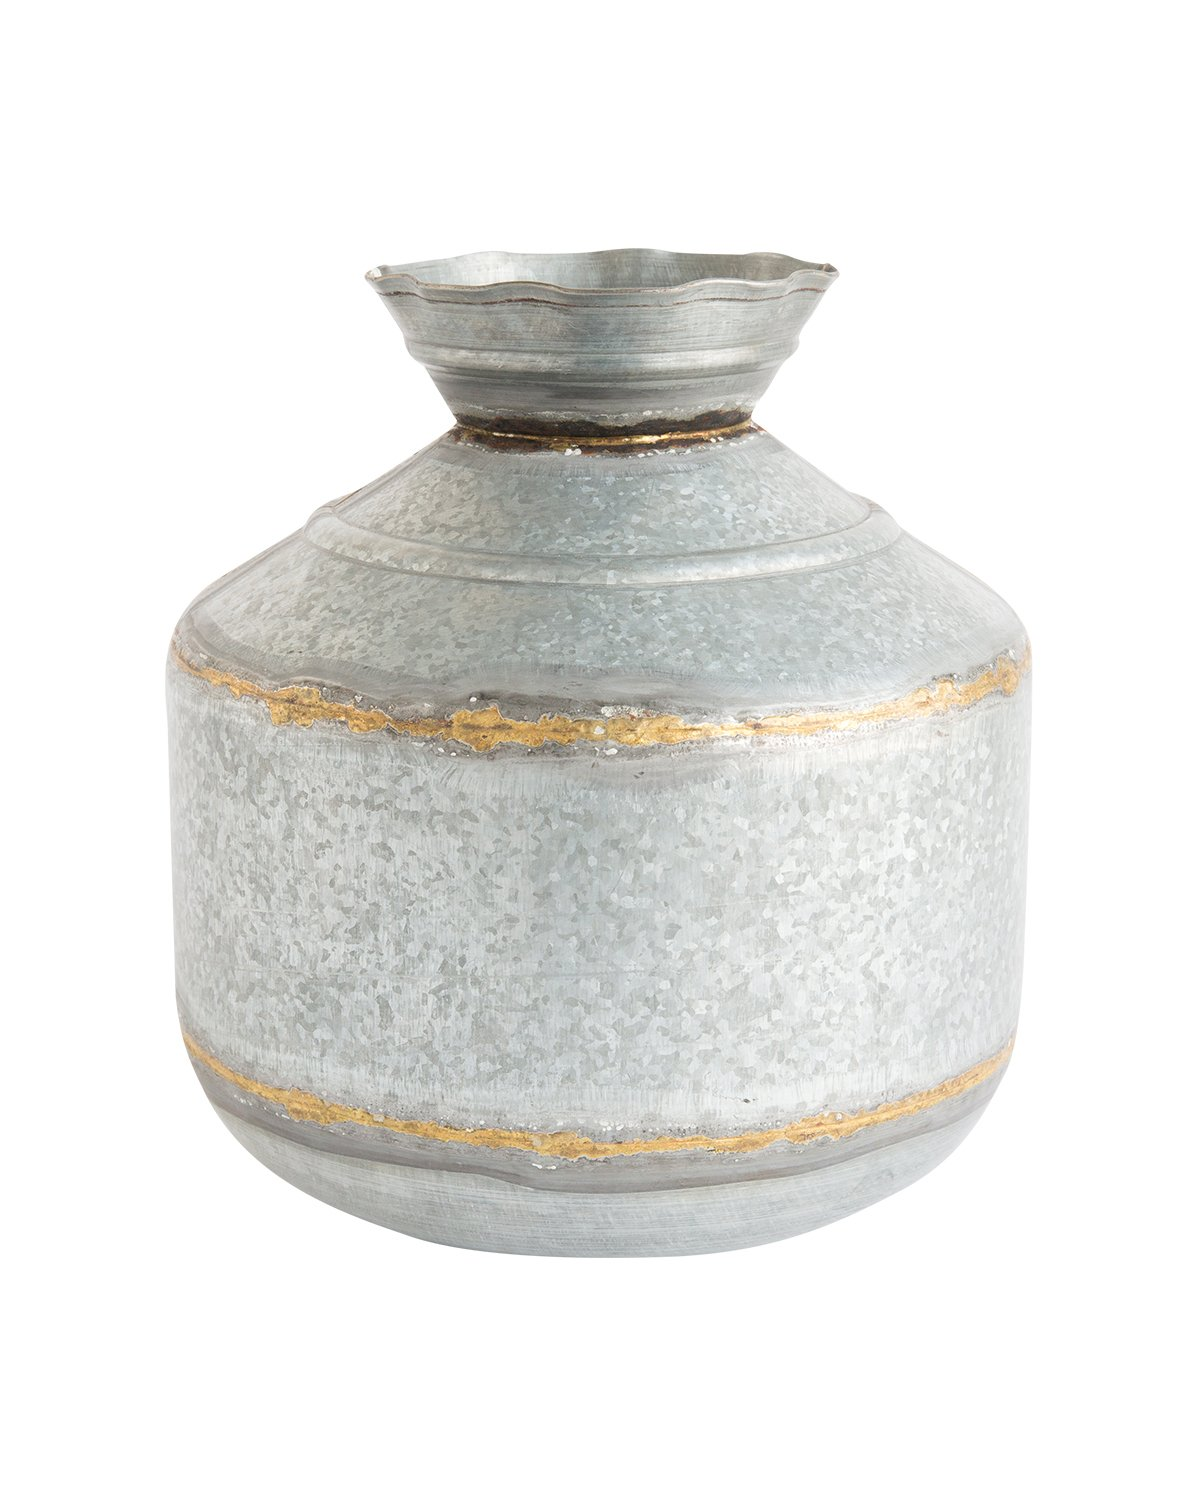 Galvanized_Metal_Vase_1.jpg